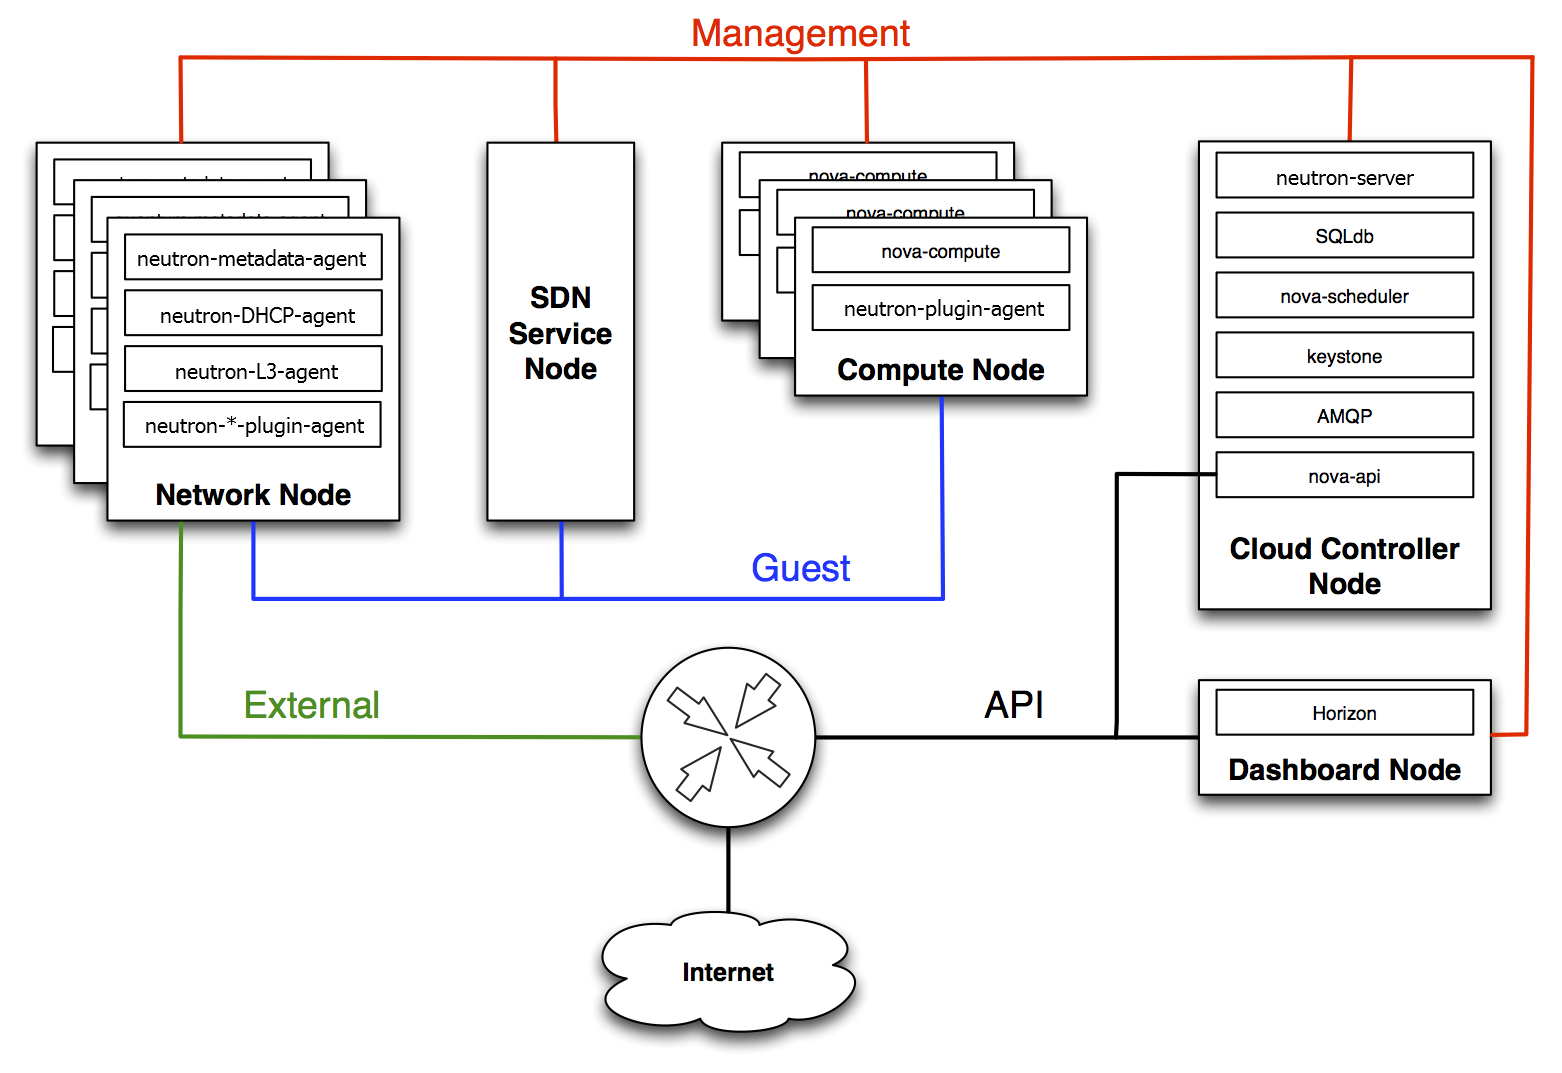 openstack docs  networking architecture images  aa network  s diagram png